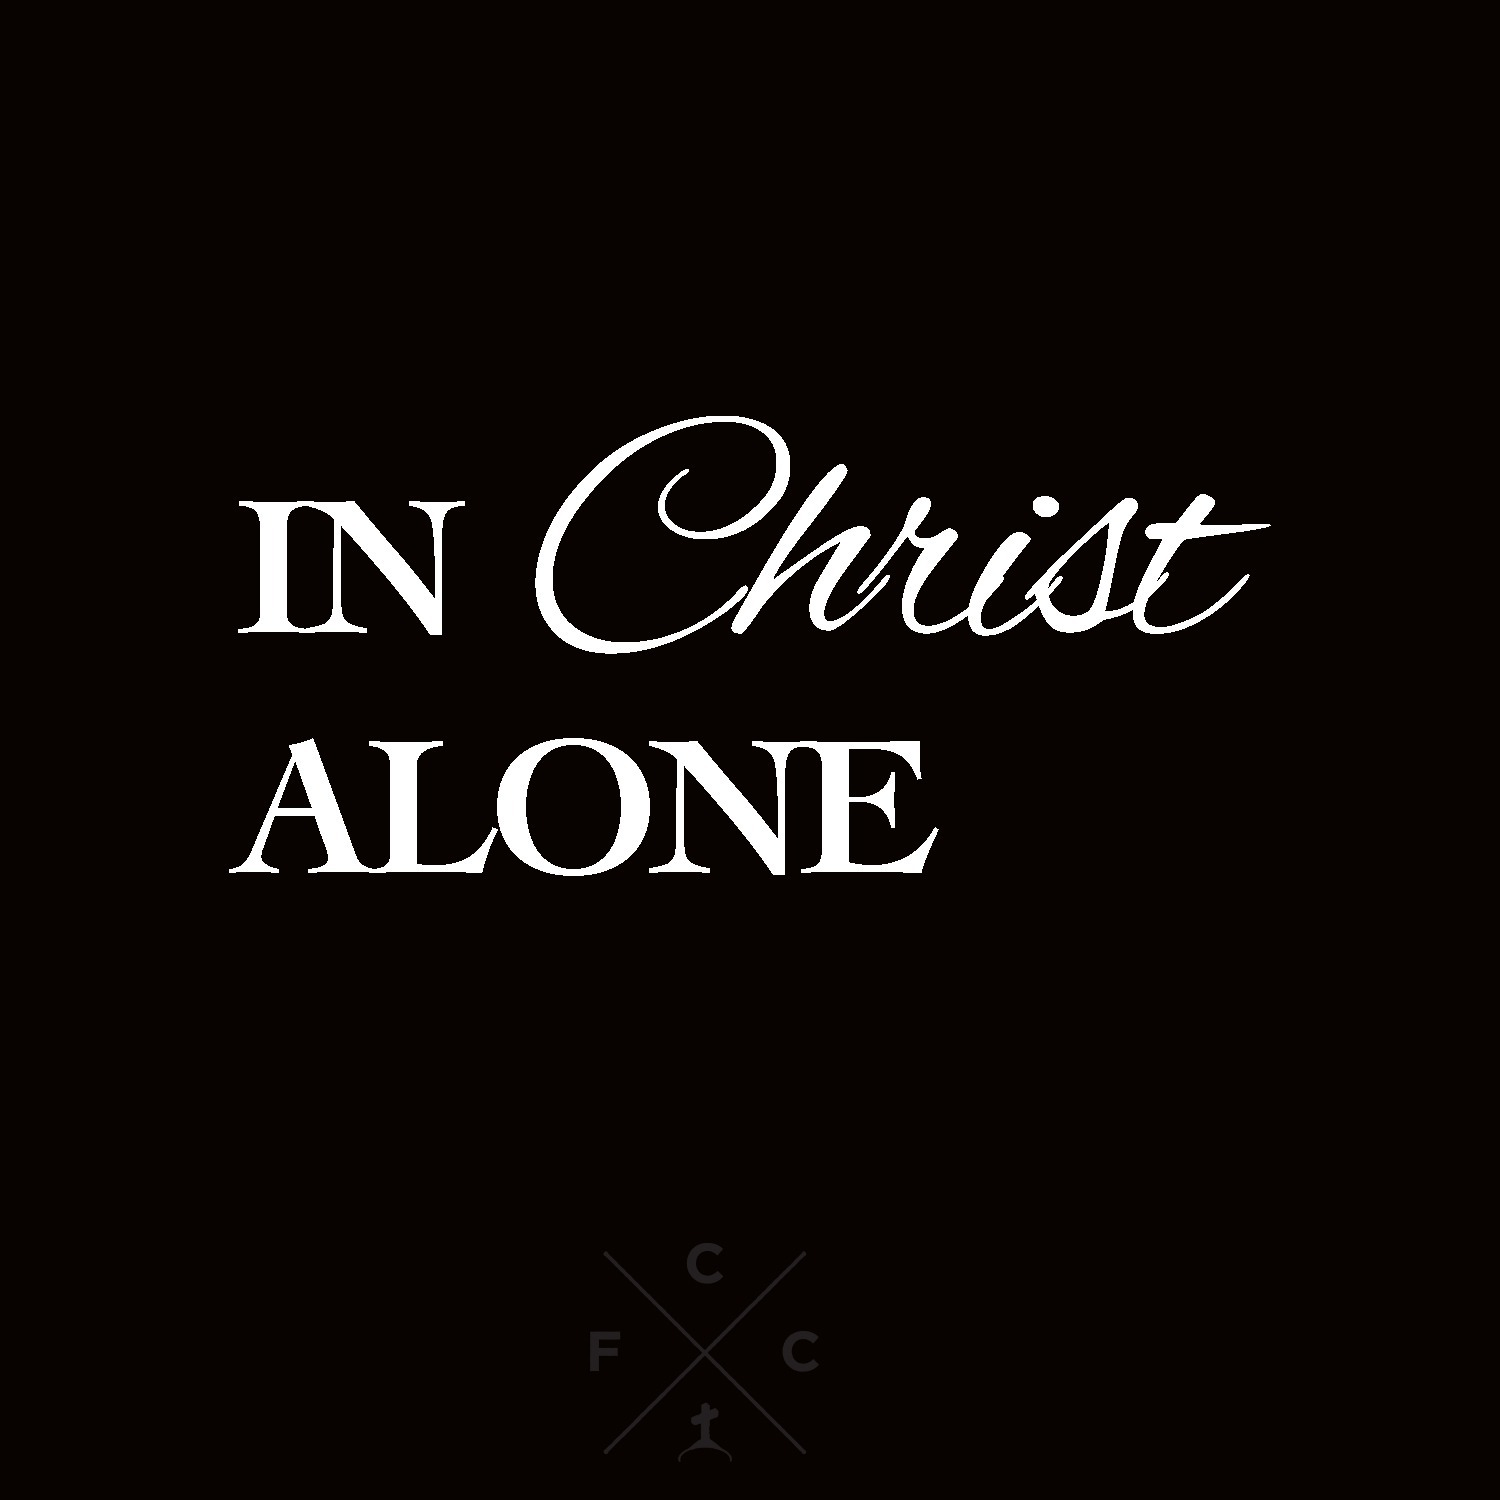 In Christ Alone (Part 2 - Keep Your Head Up)